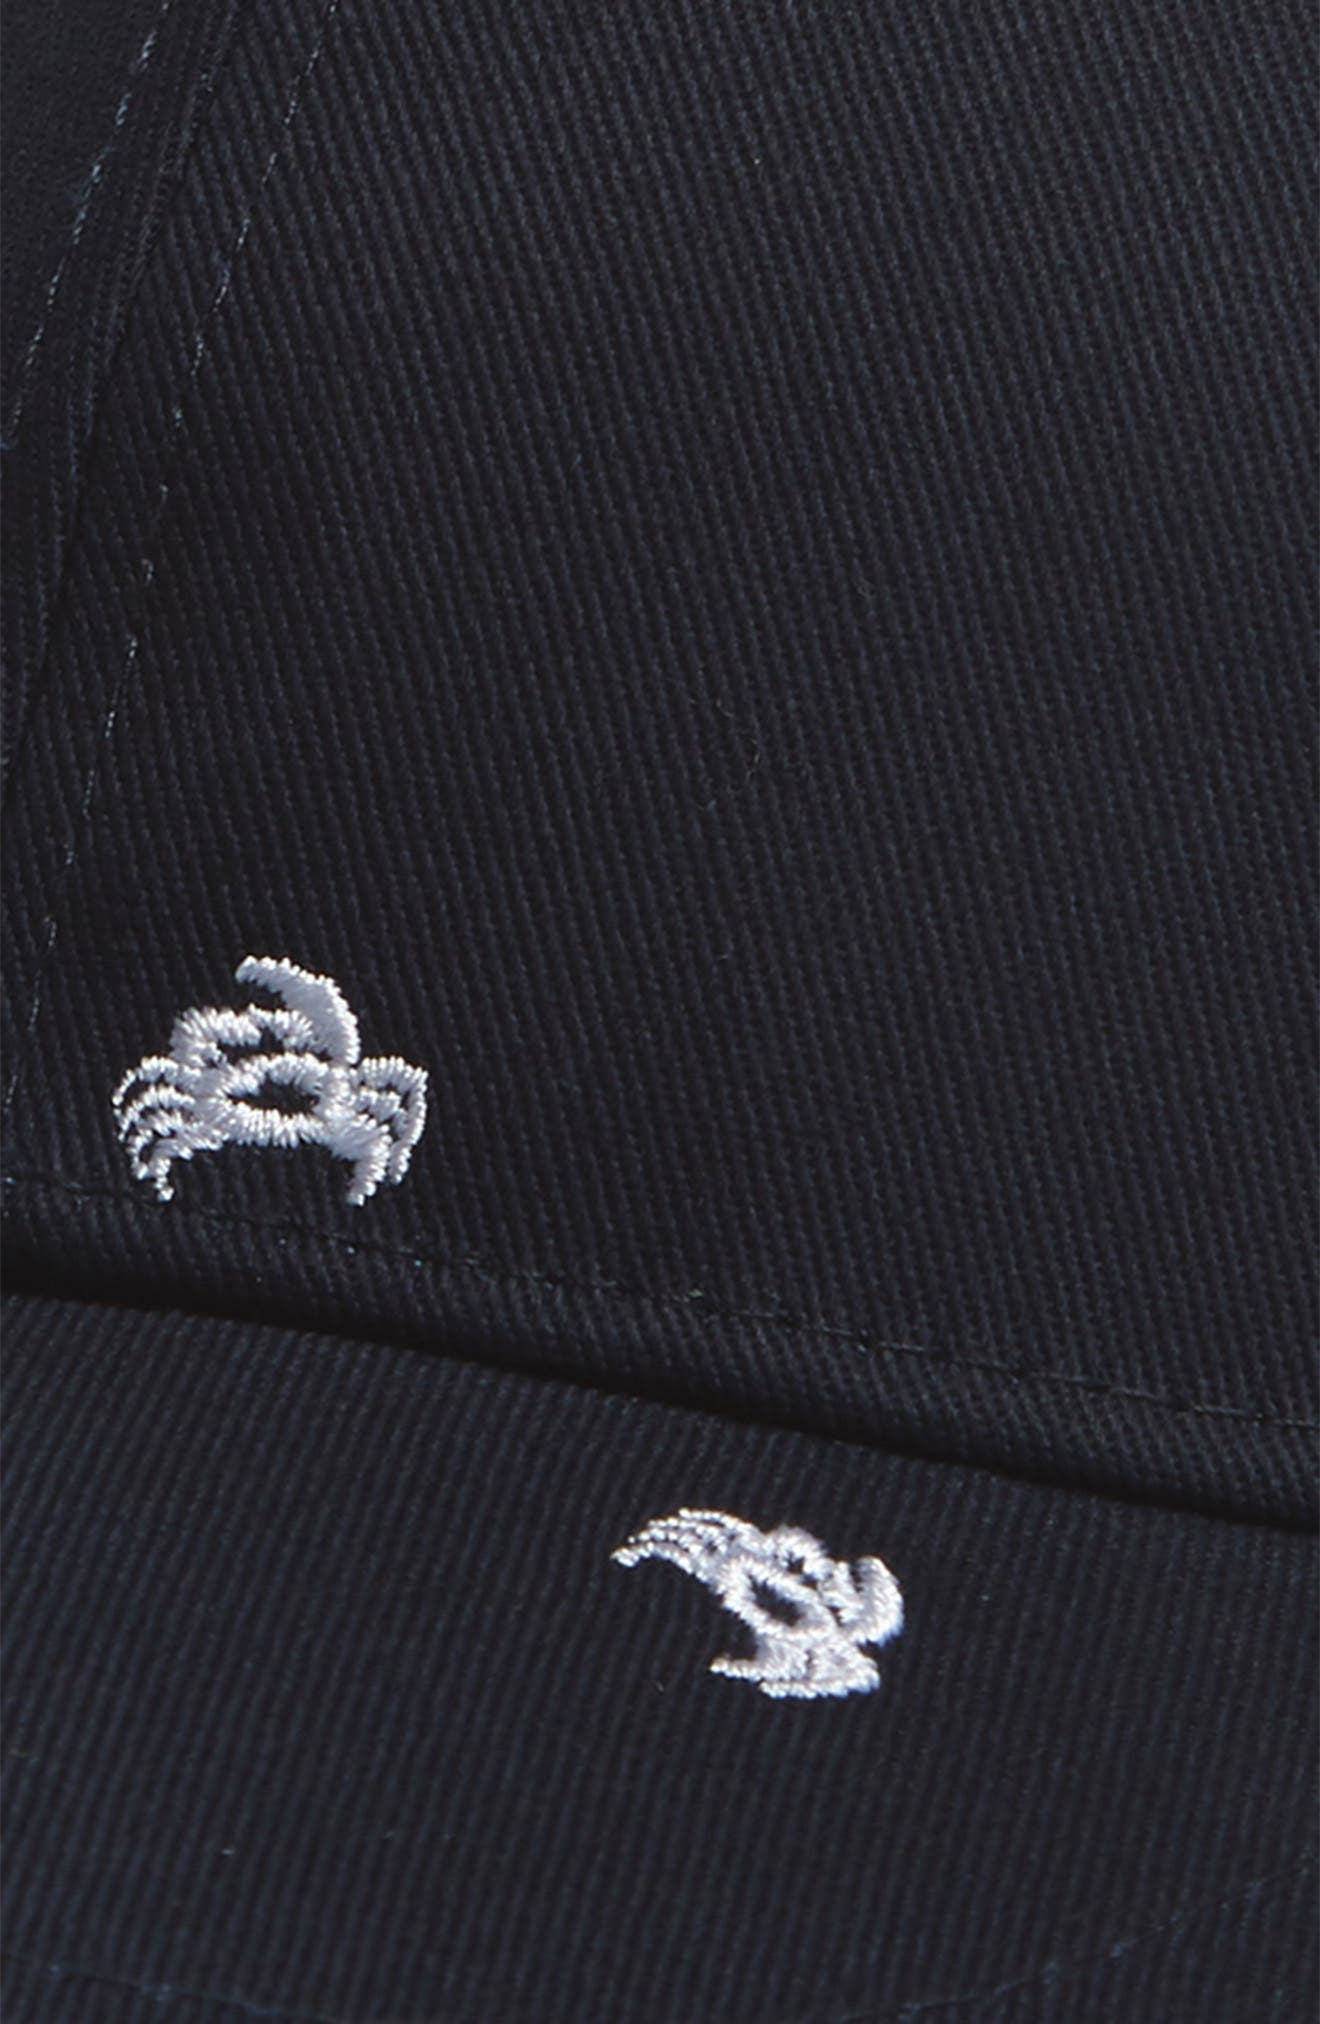 Embroidered Ball Cap,                             Alternate thumbnail 10, color,